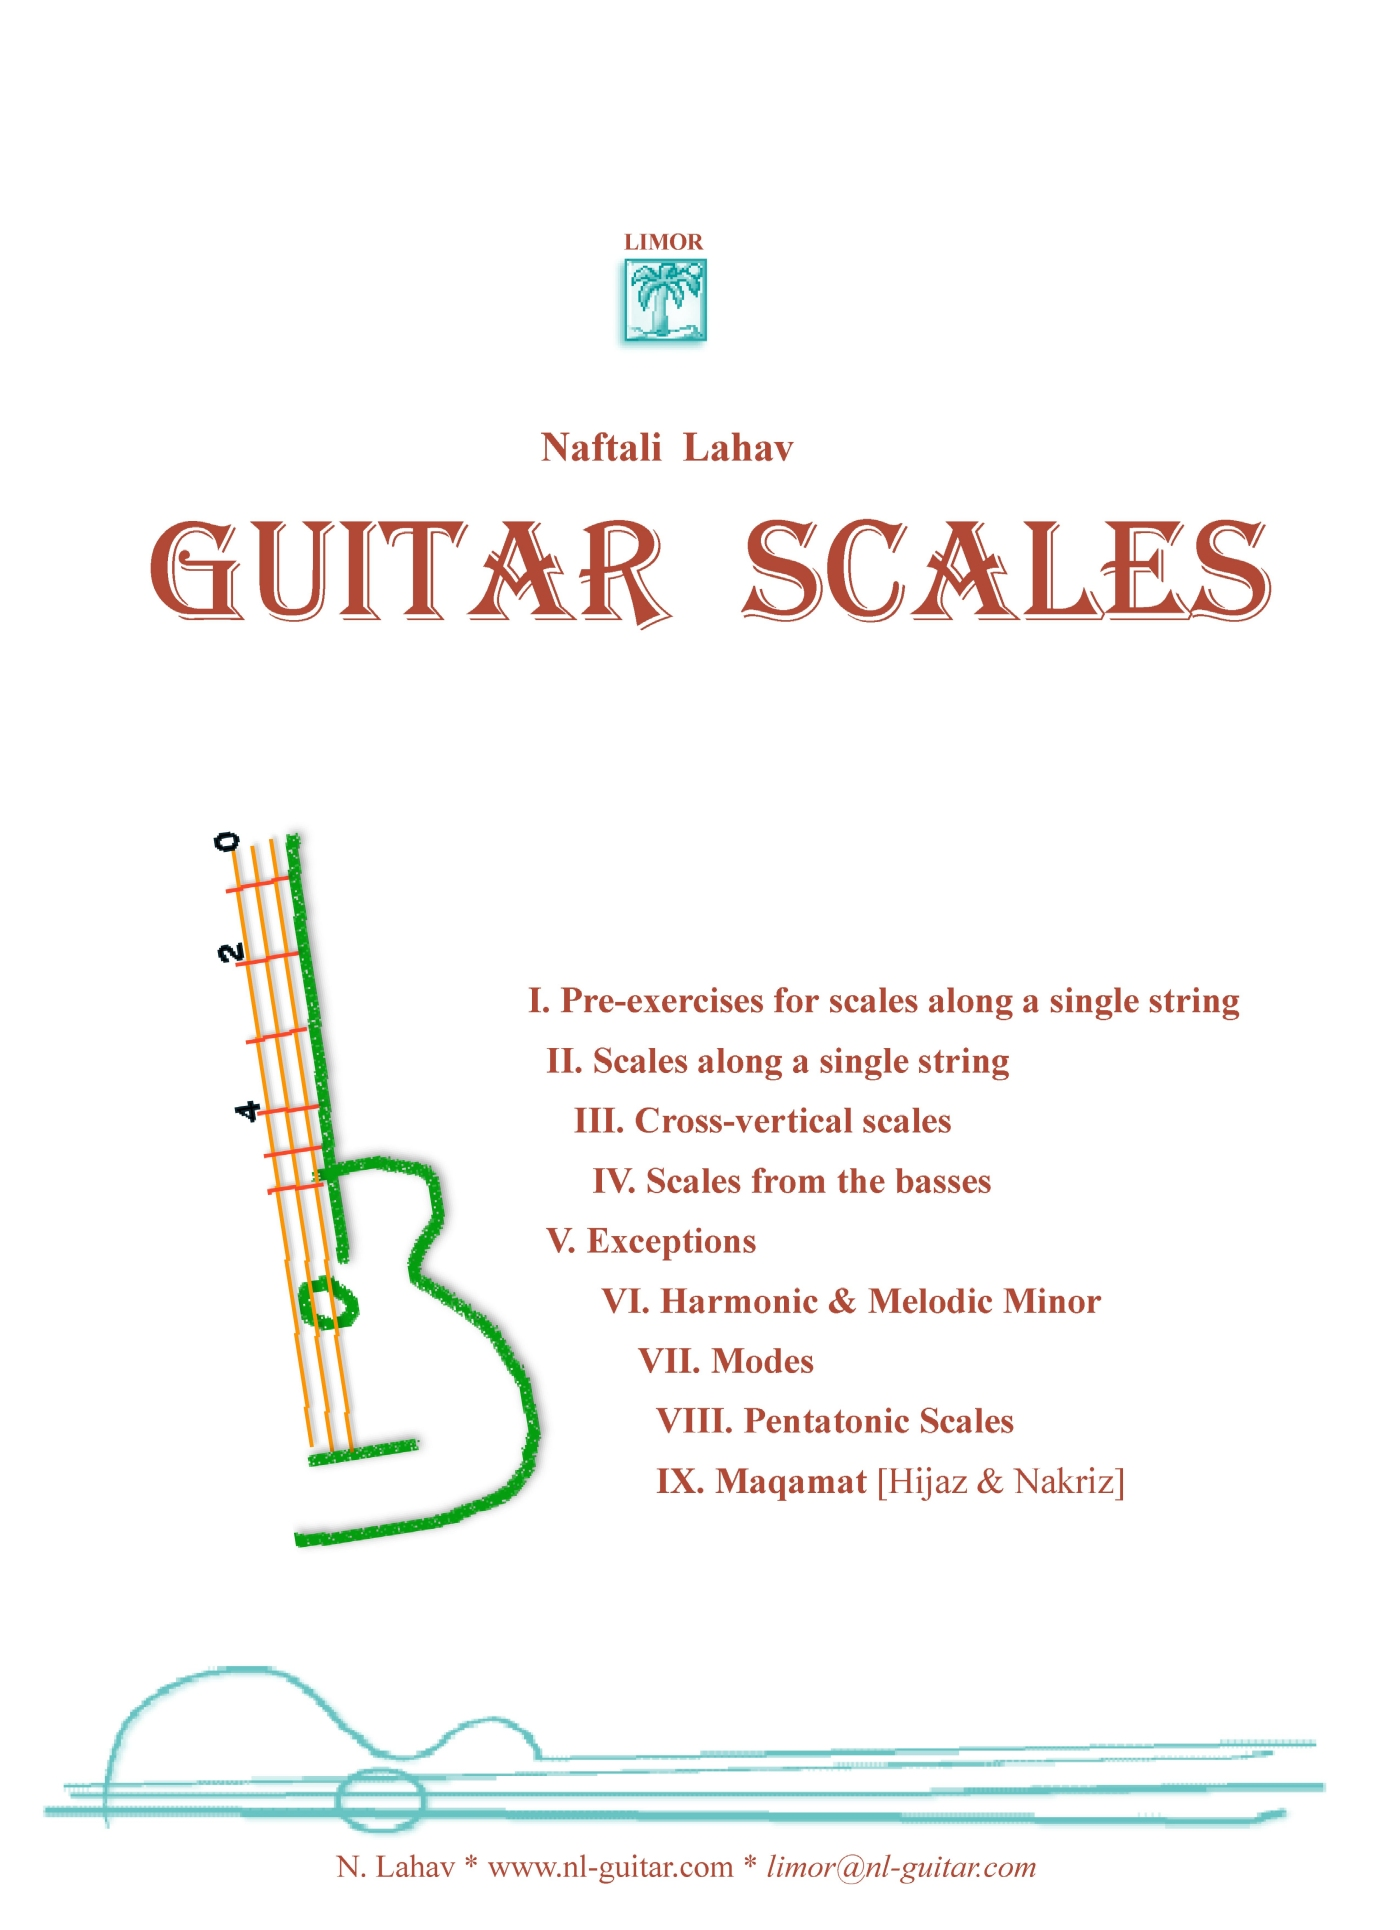 Lahav's Guitar Scales - Hard Copy